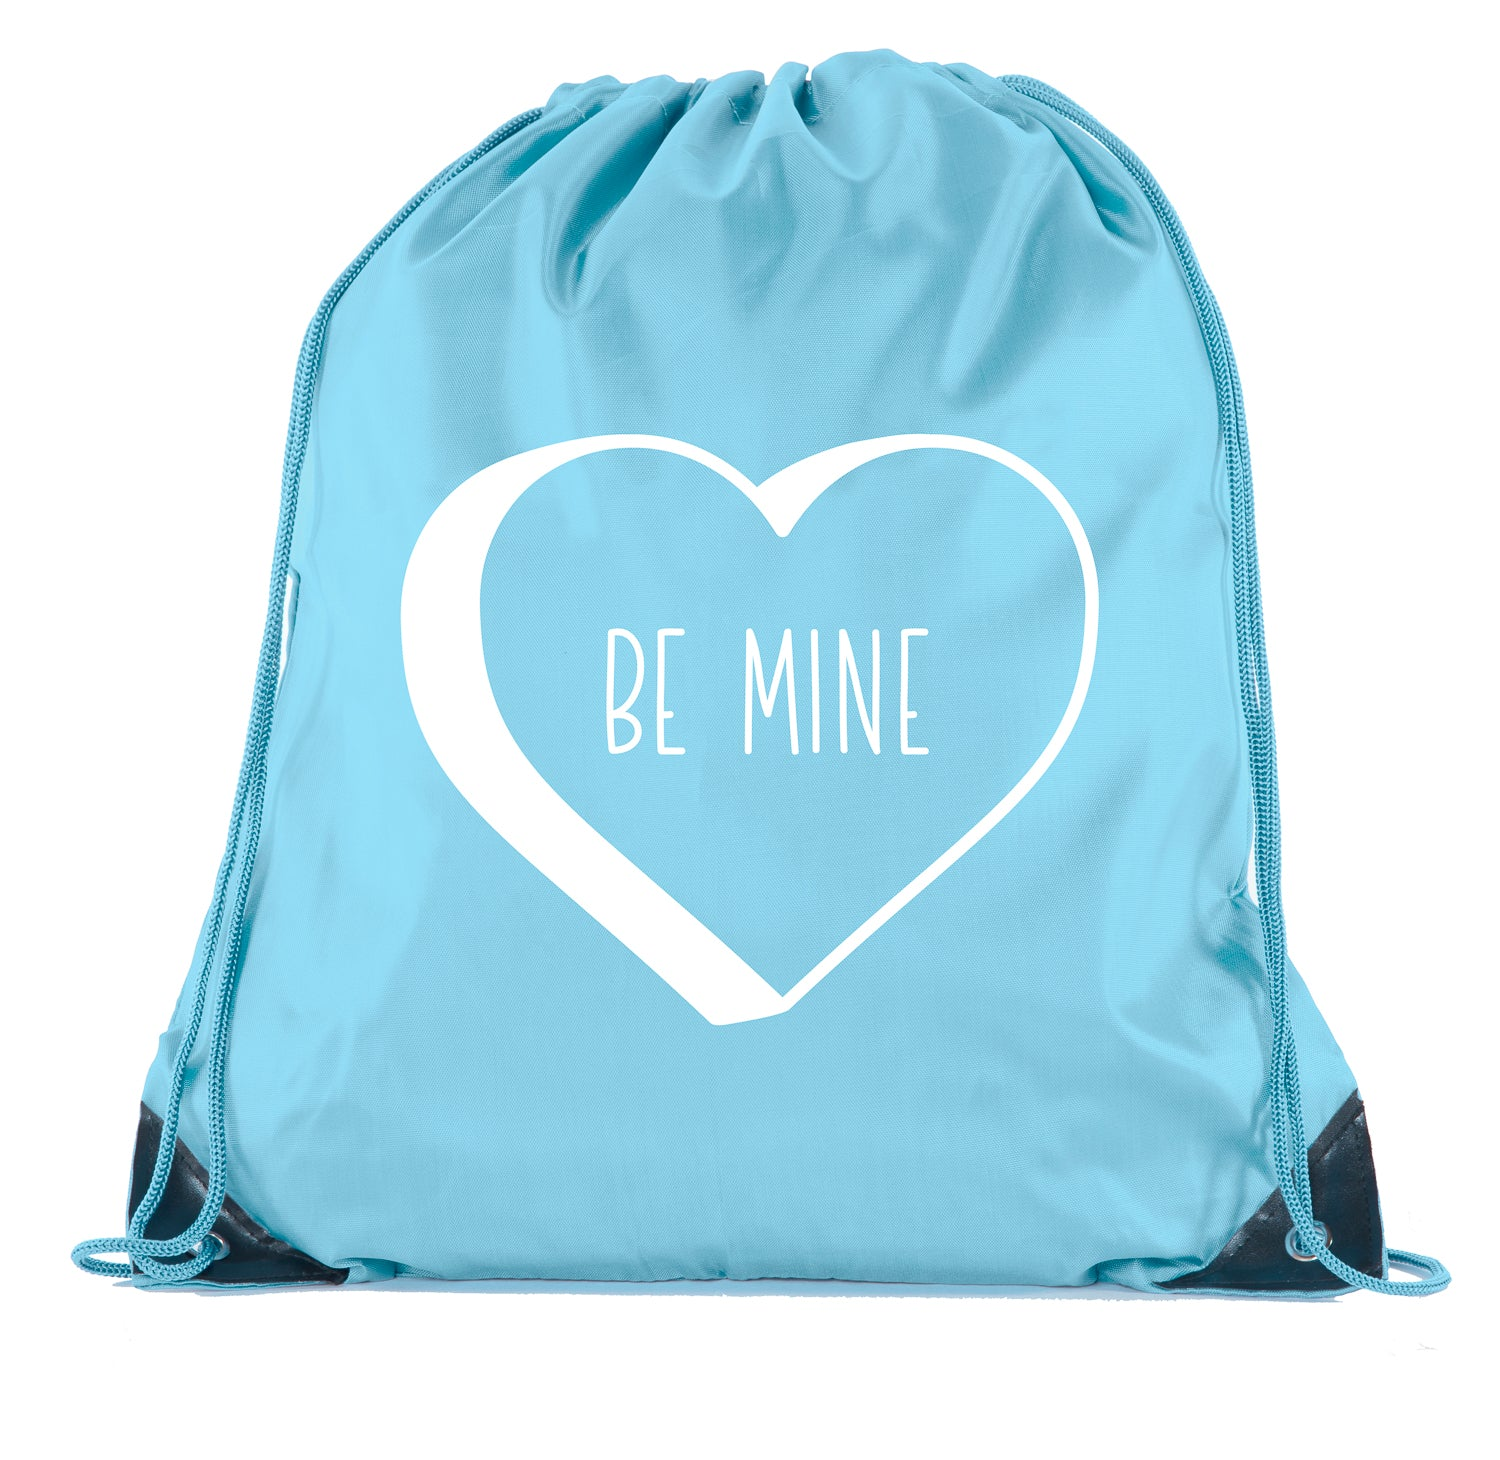 Accessory - Valentine's Day Bags, Drawstring Cinch Backpacks, Valentines Day Gift Bags - Be Mine